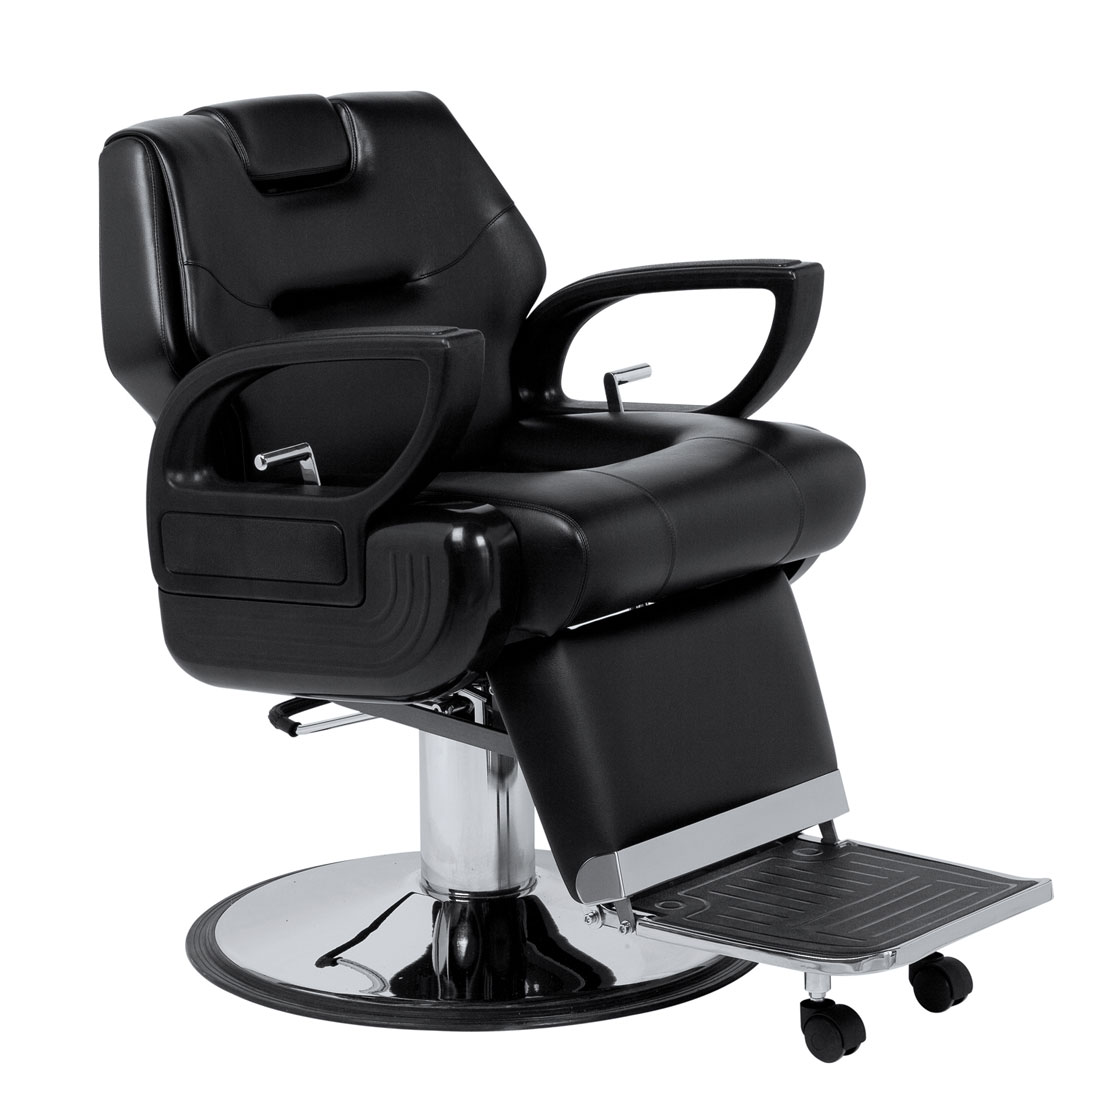 barber chair free shipping plastic lawn chairs stackable shop edwin sav 001 b savvy in black